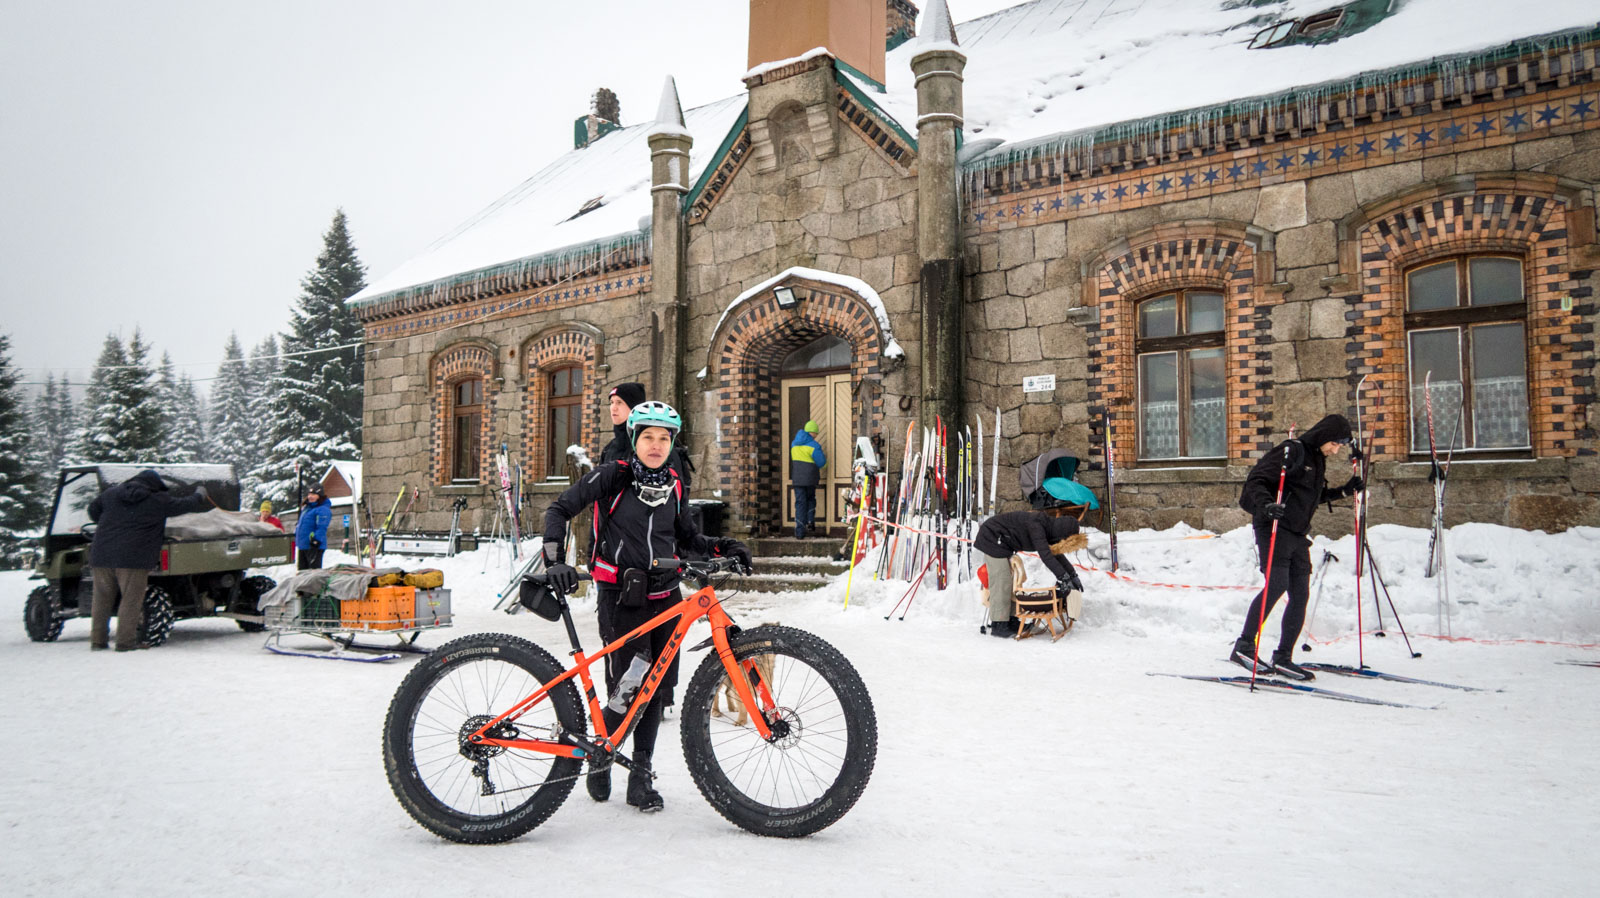 Orle na fat bike-u